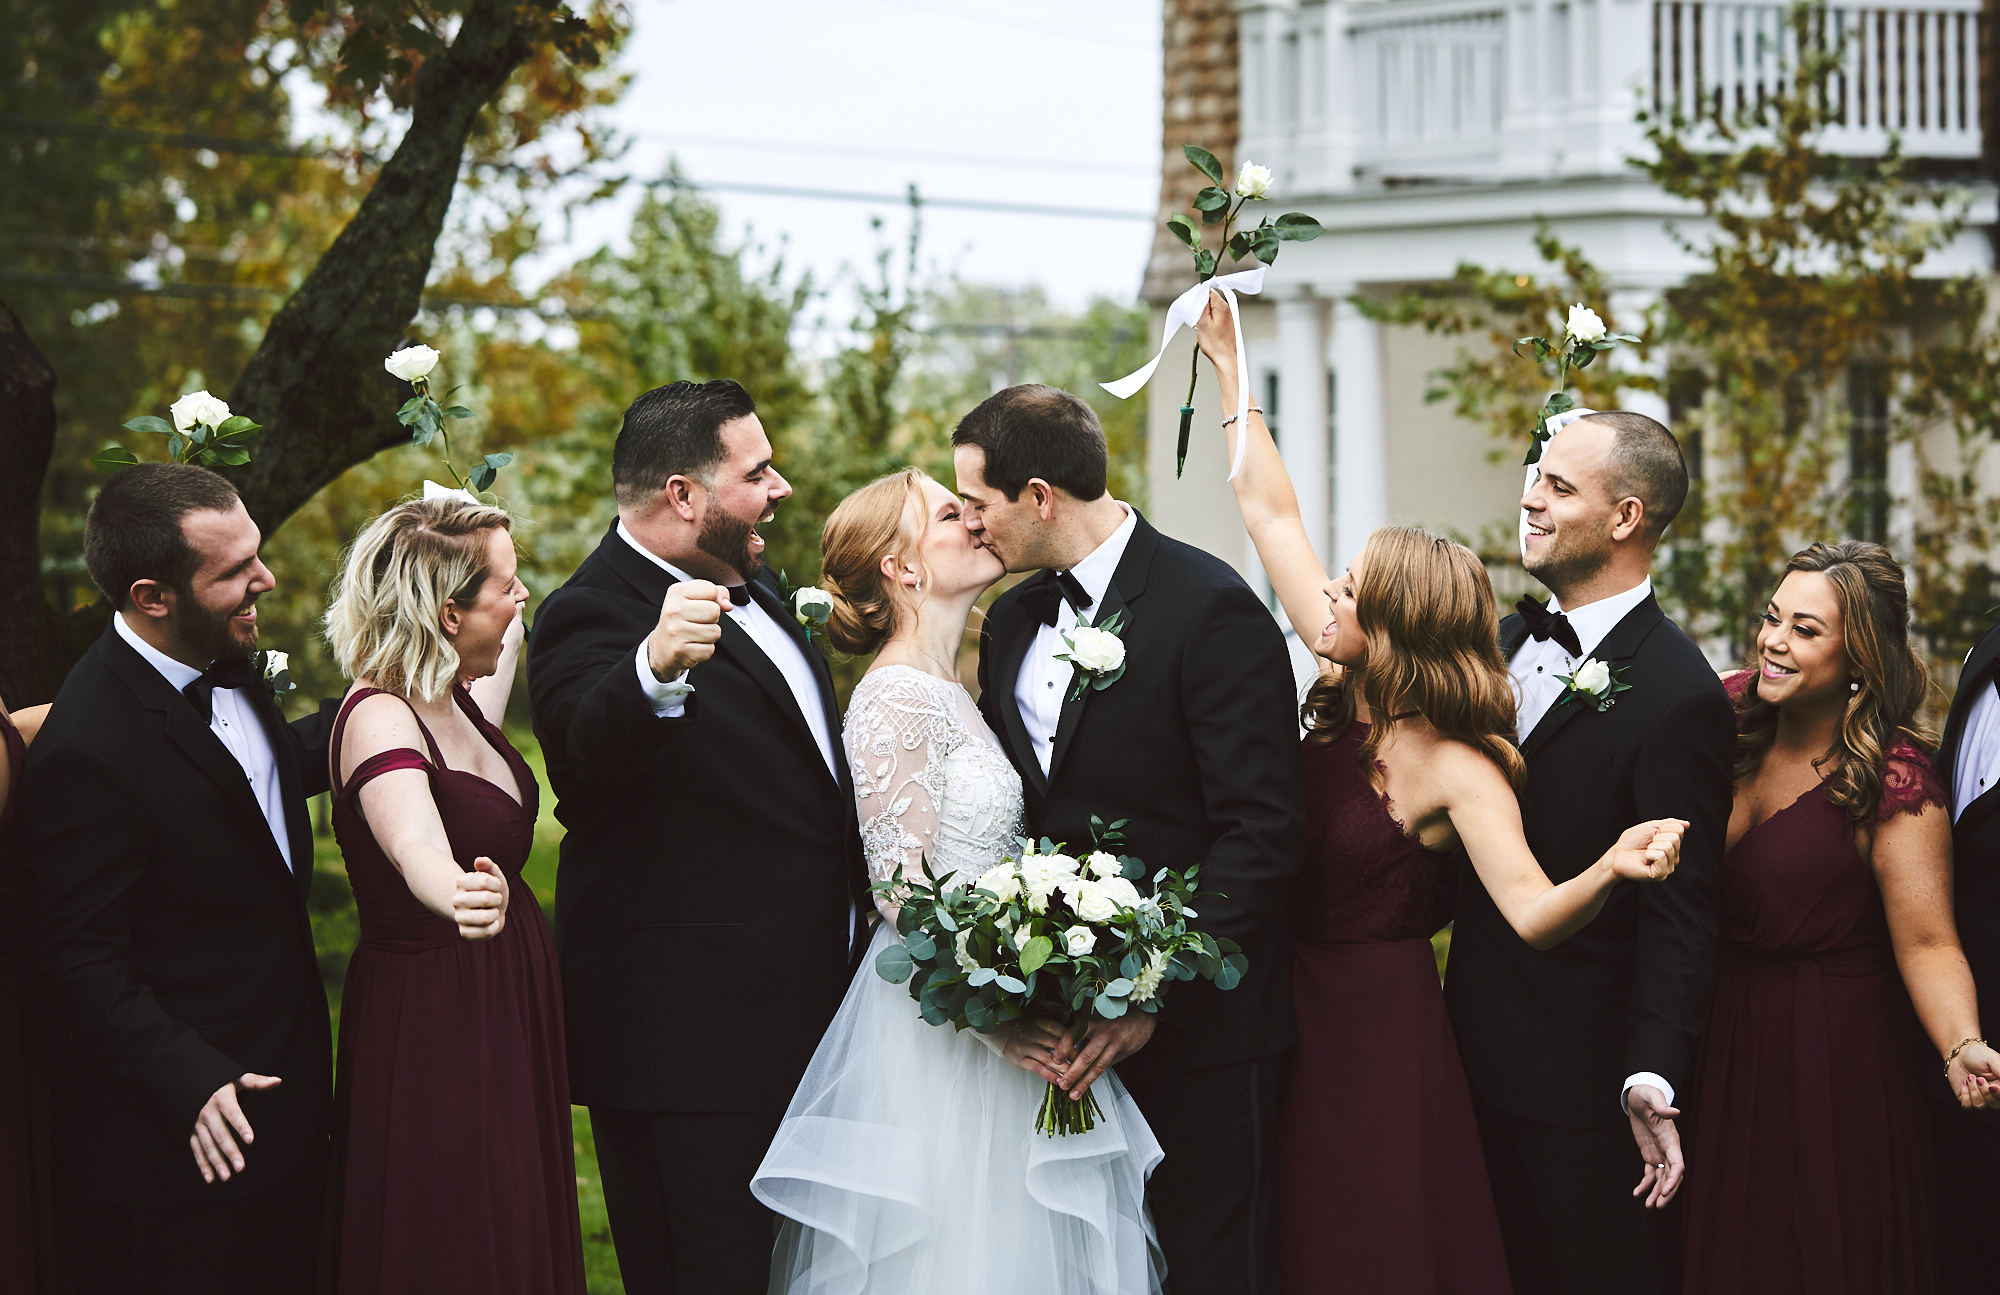 181027_TheRylandInnFallWeddingPhotography_NJWeddingPhotographer_By_BriJohnsonWeddings_0067.jpg